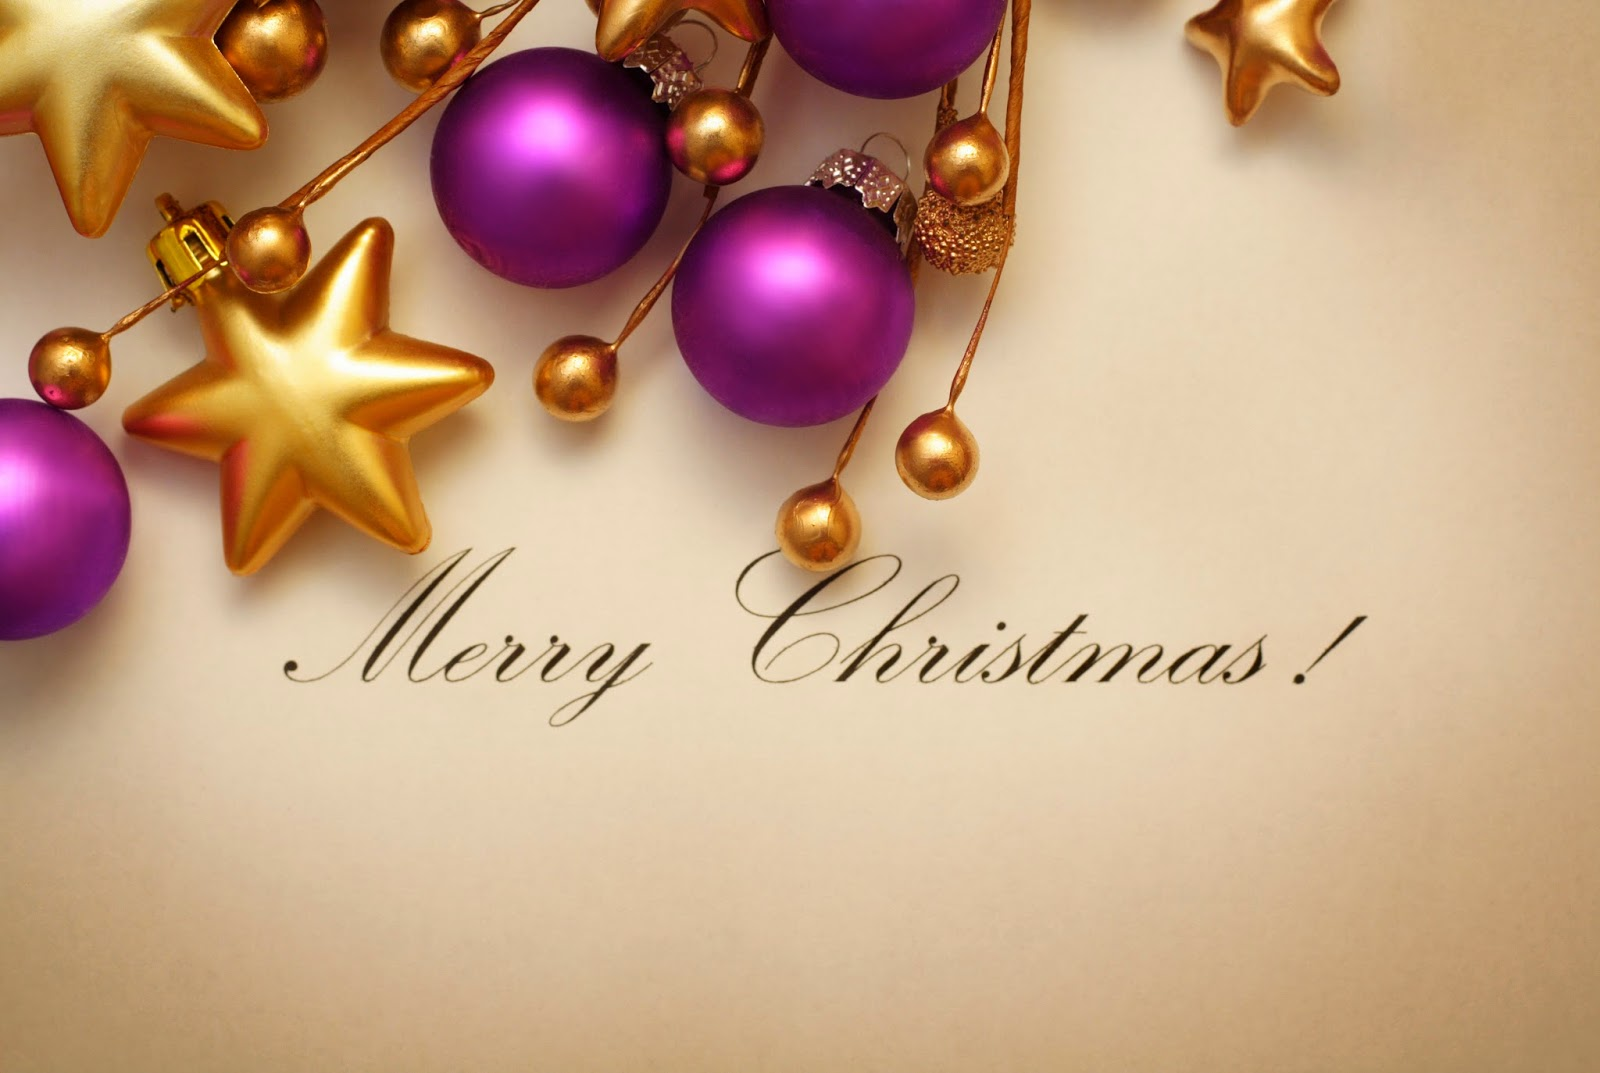 Merry-Christmas-stylish-text-paper-background-star-baubles-image-HD-stock-photo.jpg